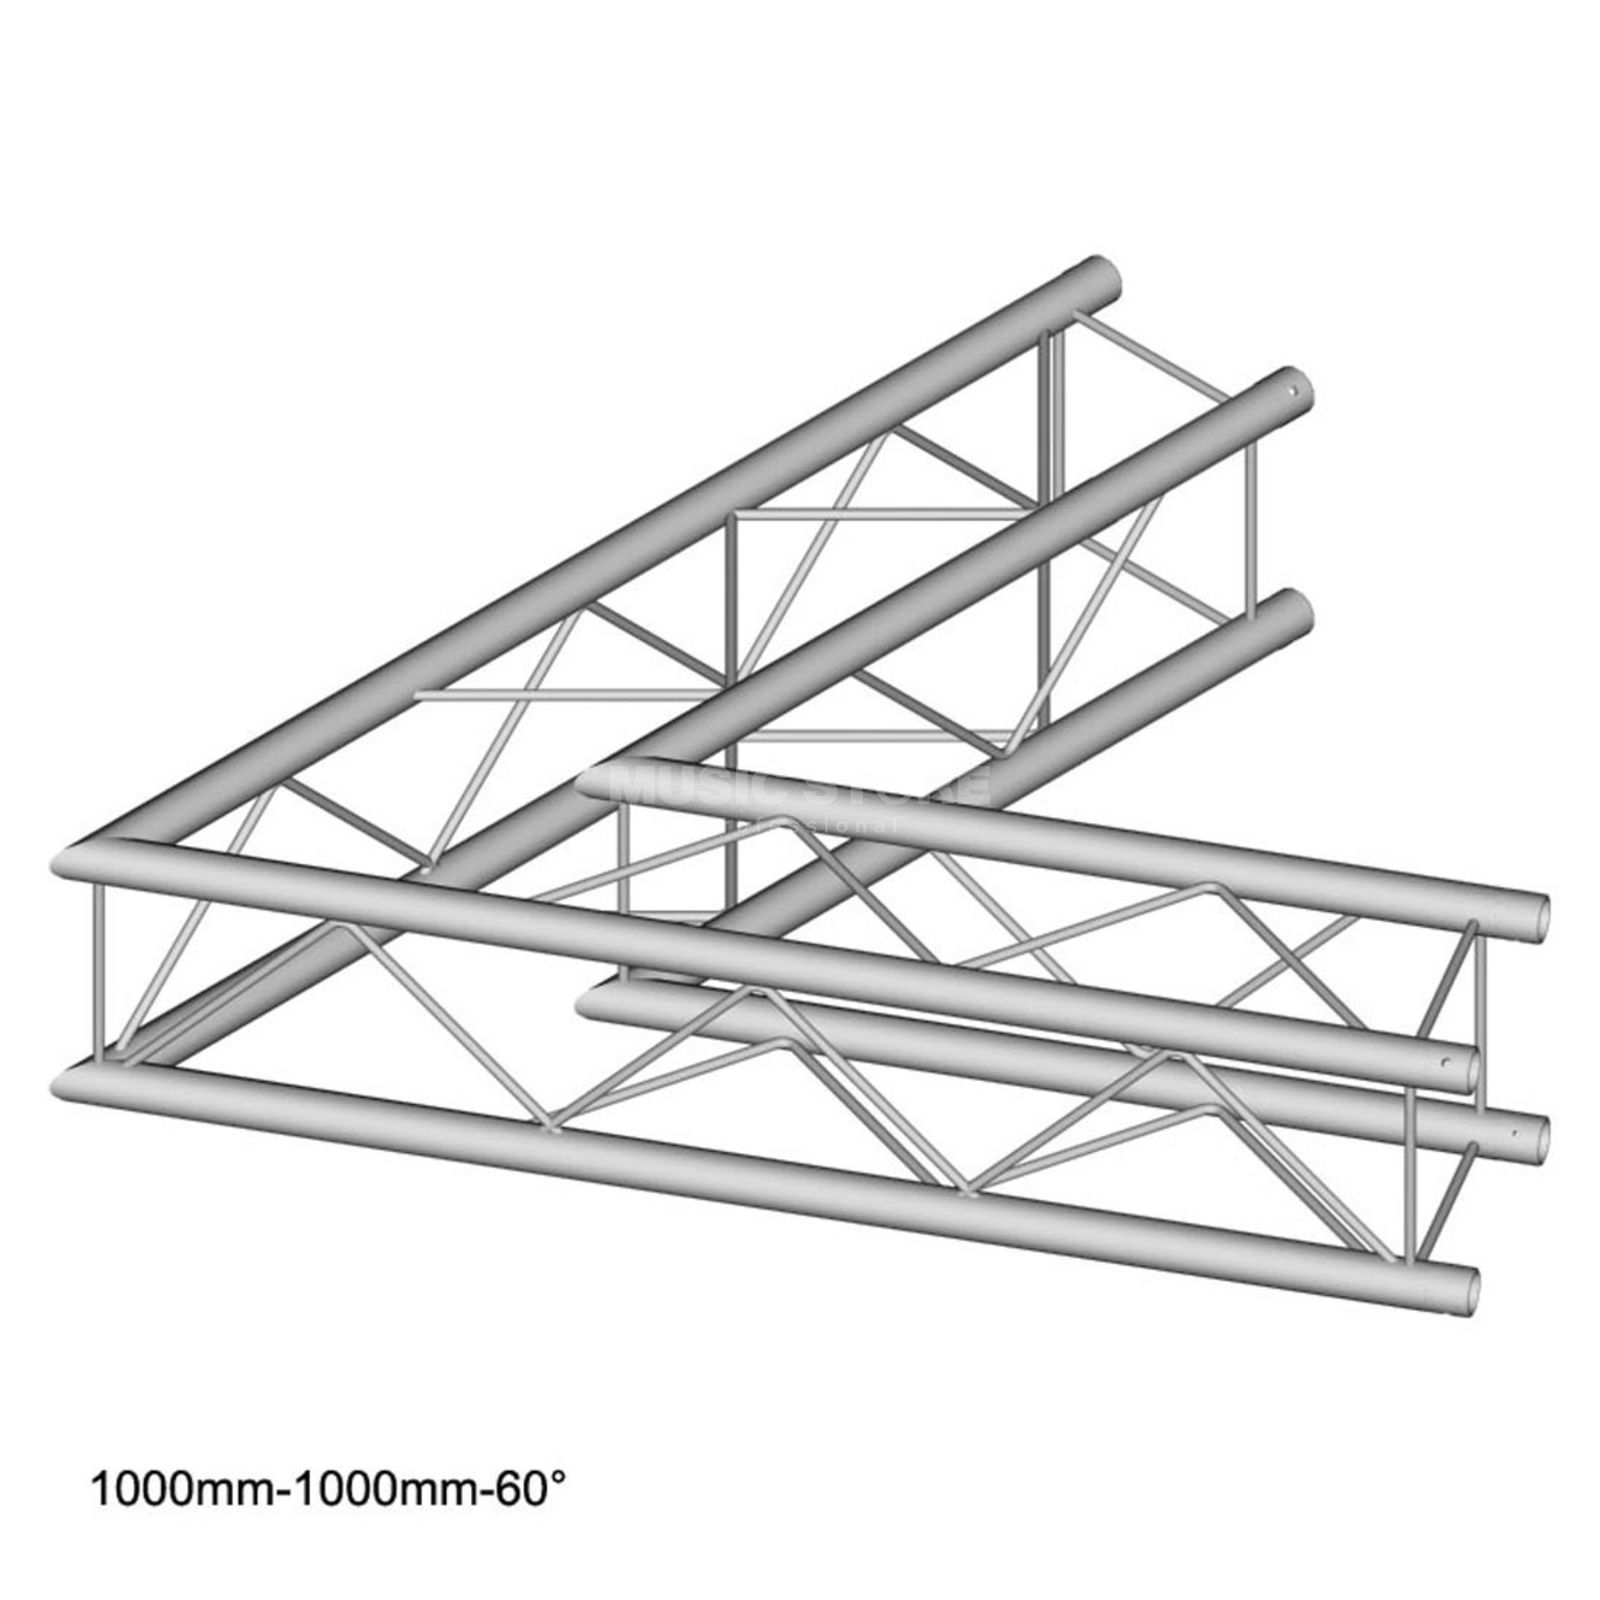 DURATRUSS DT 24 C20-L60, 4-Point Truss 60° Corner, 2-Way, 100cm Produktbillede